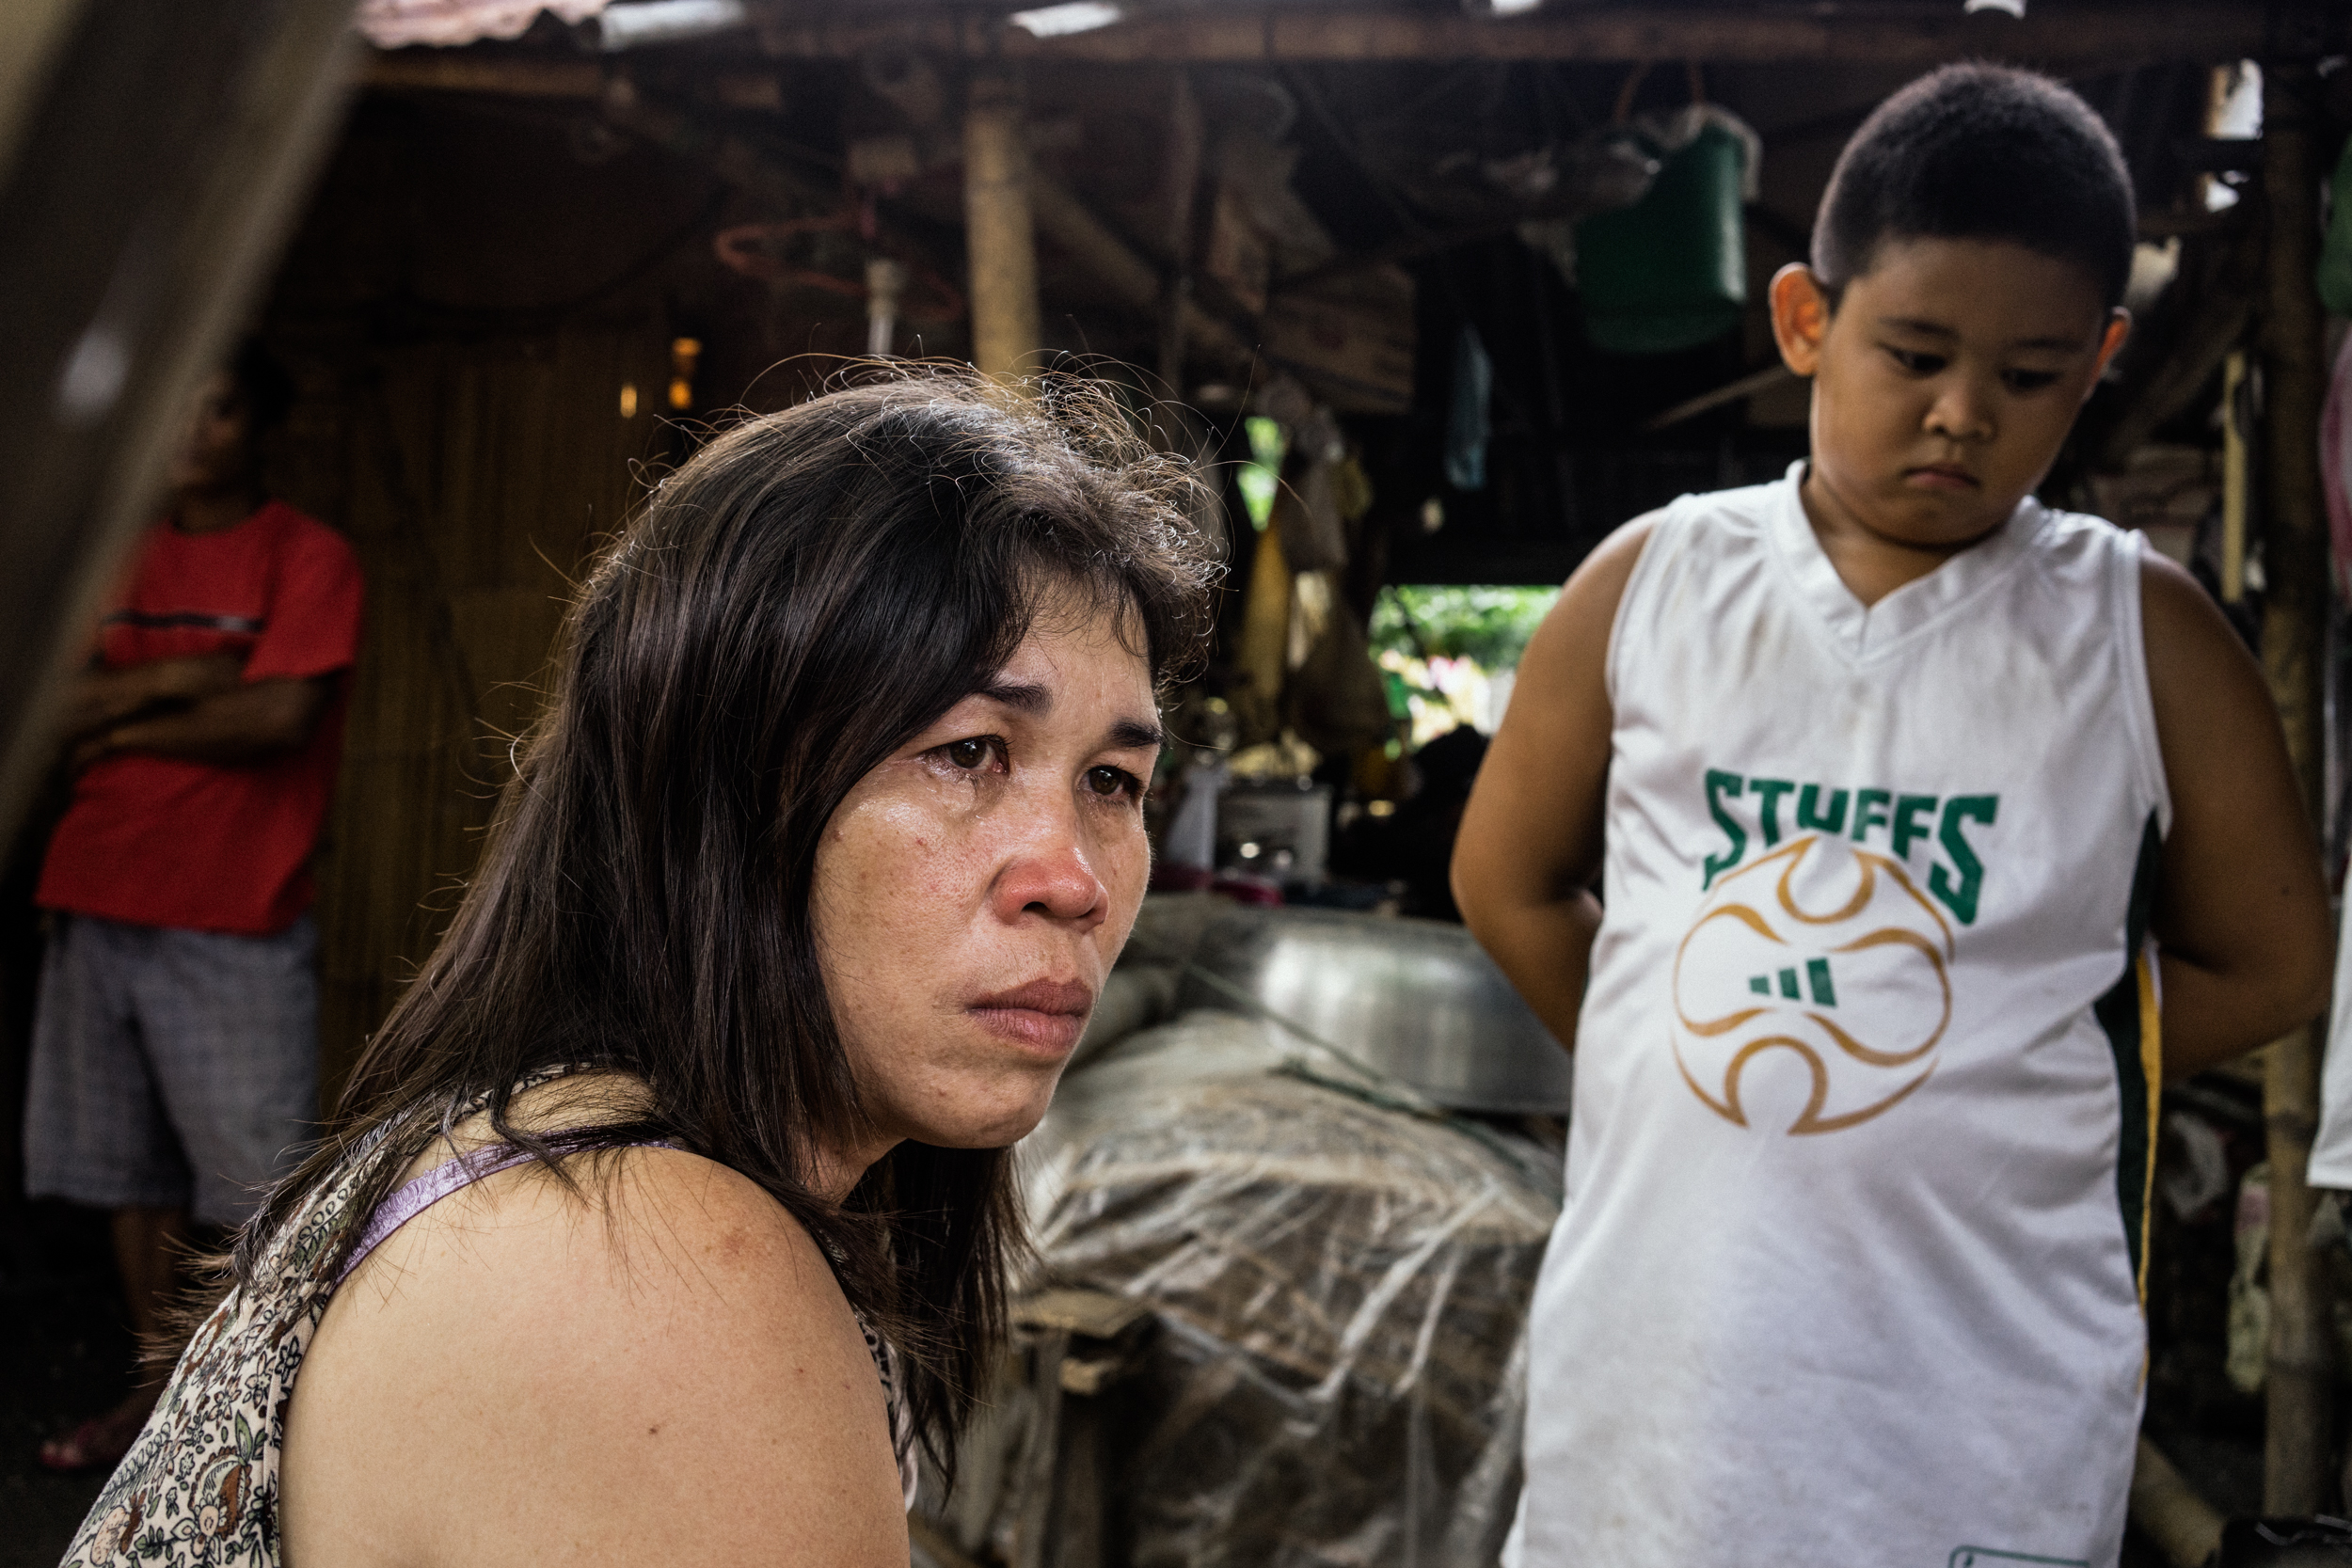 Kalibo, Philippines - September 20, 2015: Celia Robelo is seen with her son at a jail where she is being held on human trafficking and illegal recruitment charges following the death of a Filipino seafarer. Robelo claims that she did not have any knowledge of the illegal nature of her recruitment, claiming she only wanted to help these men find work and a way out of poverty. Hannah Reyes